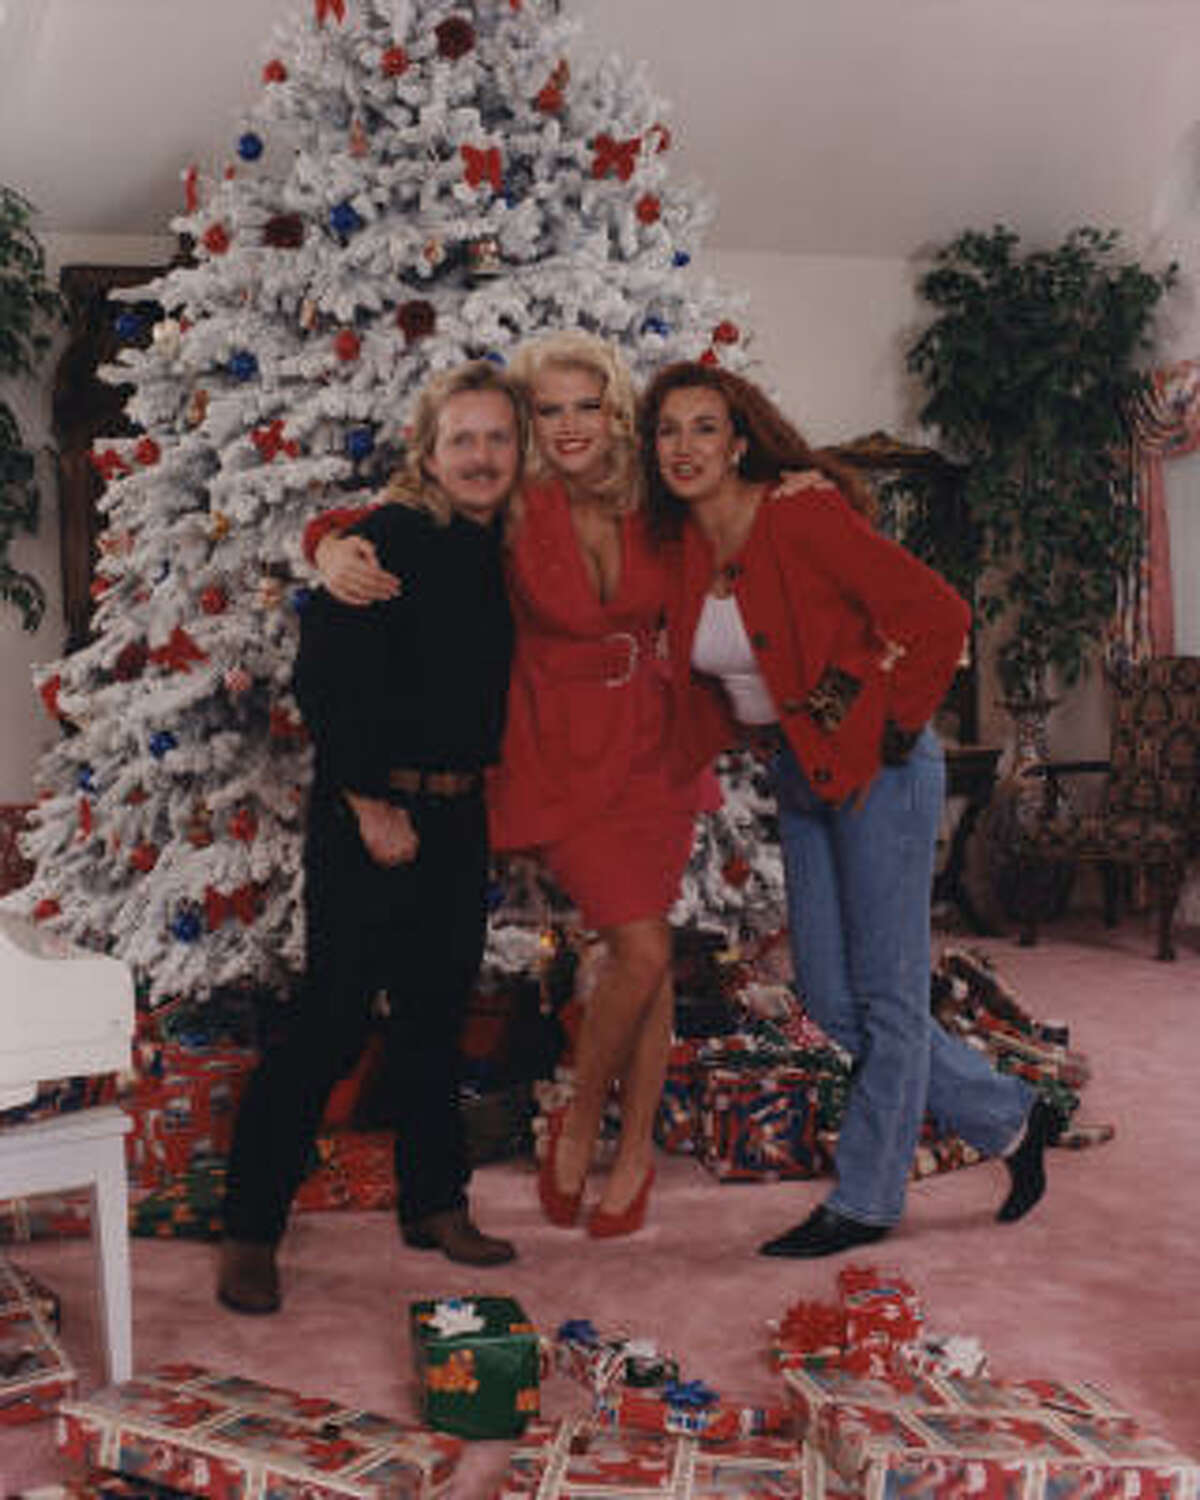 Photographer Eric Redding and his wife D'Eva's updated edition of Great Big Beautiful Doll, a biography story of their experiences with Anna Nicole Smith, center, hit newsstands the day after the model's death.